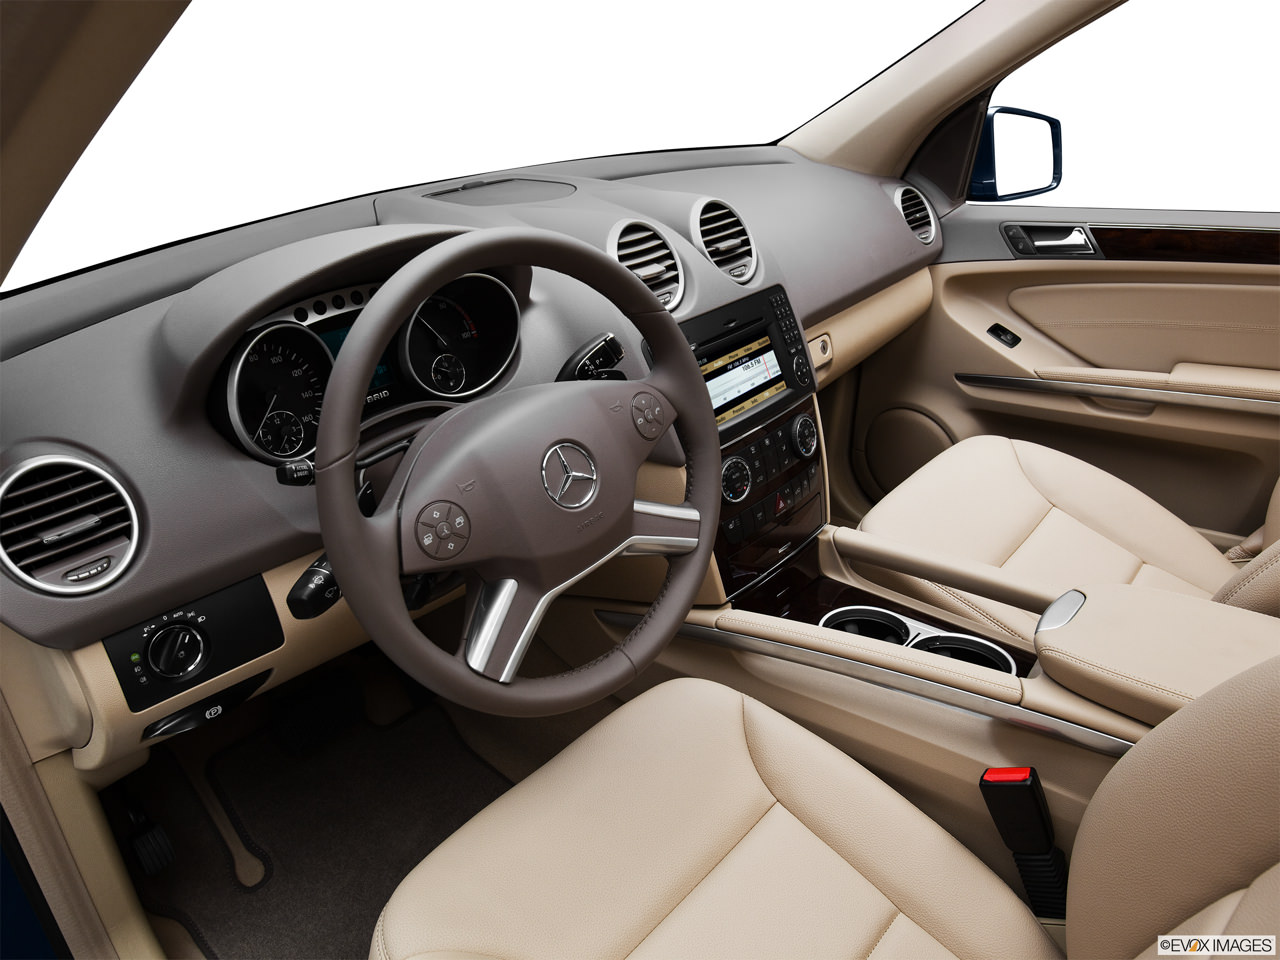 Mercedes Benz ML450 Hybrid 2012 Interior